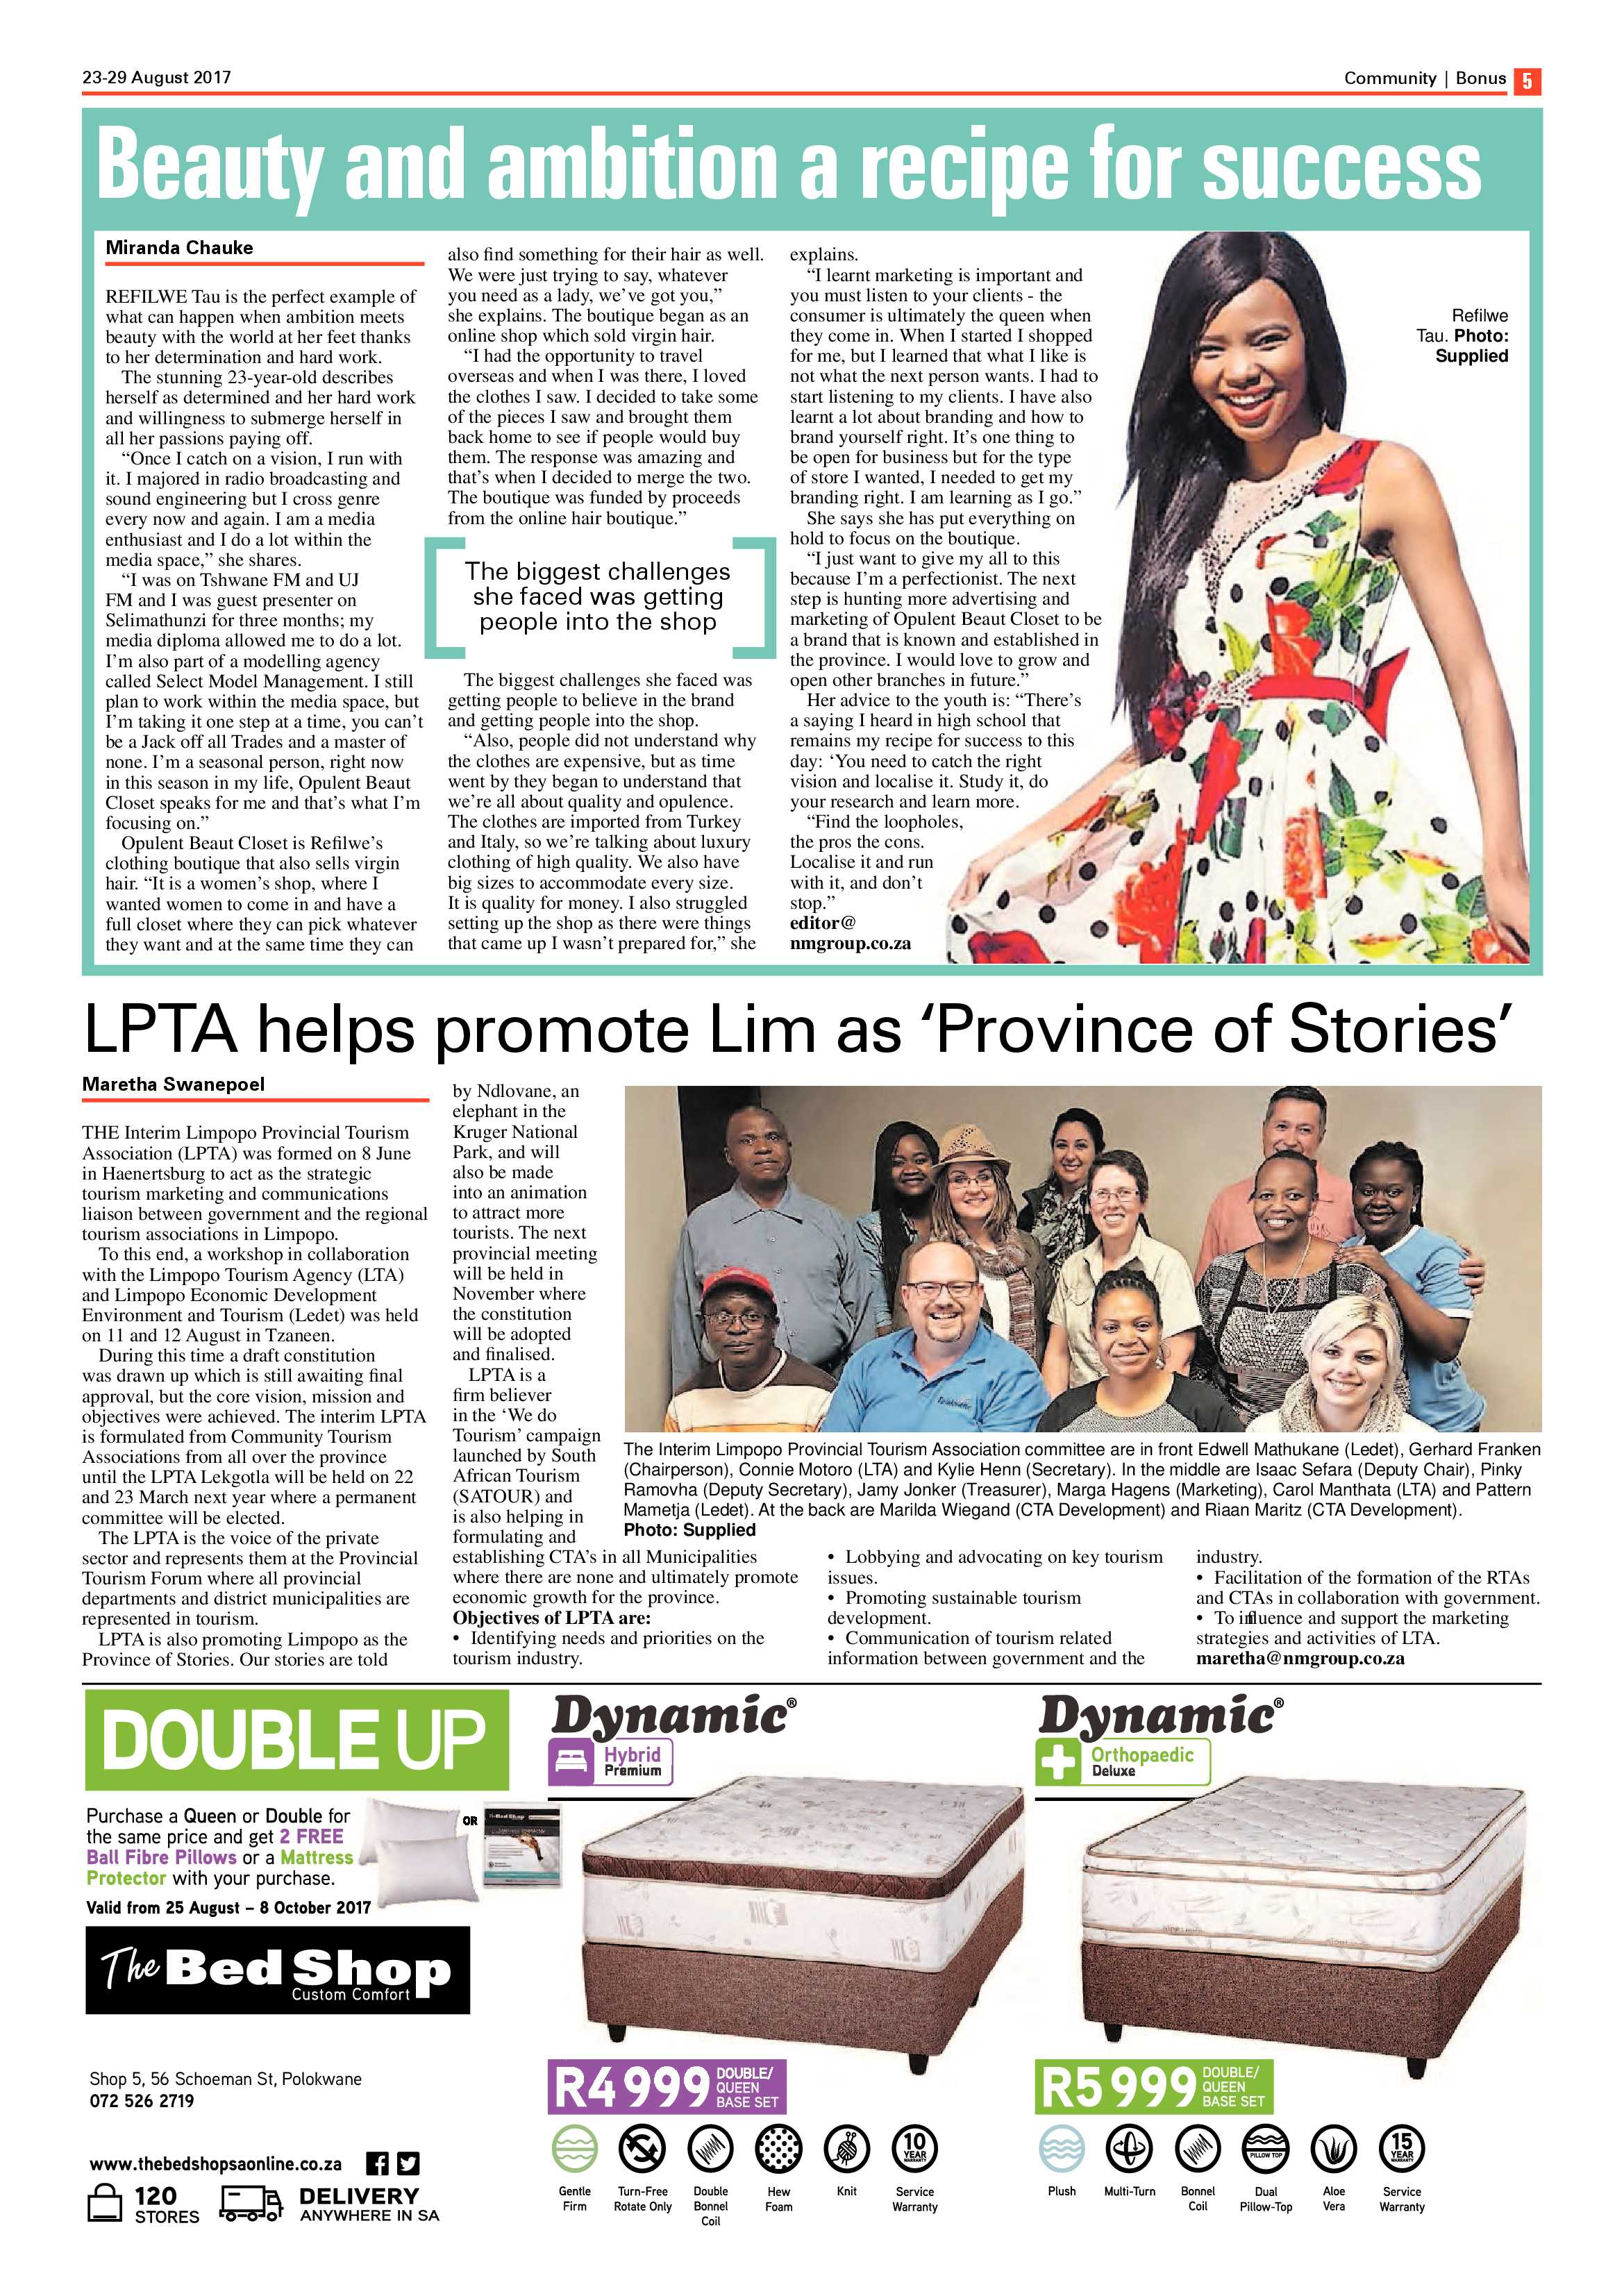 review-bonus-23-august-2017-epapers-page-5